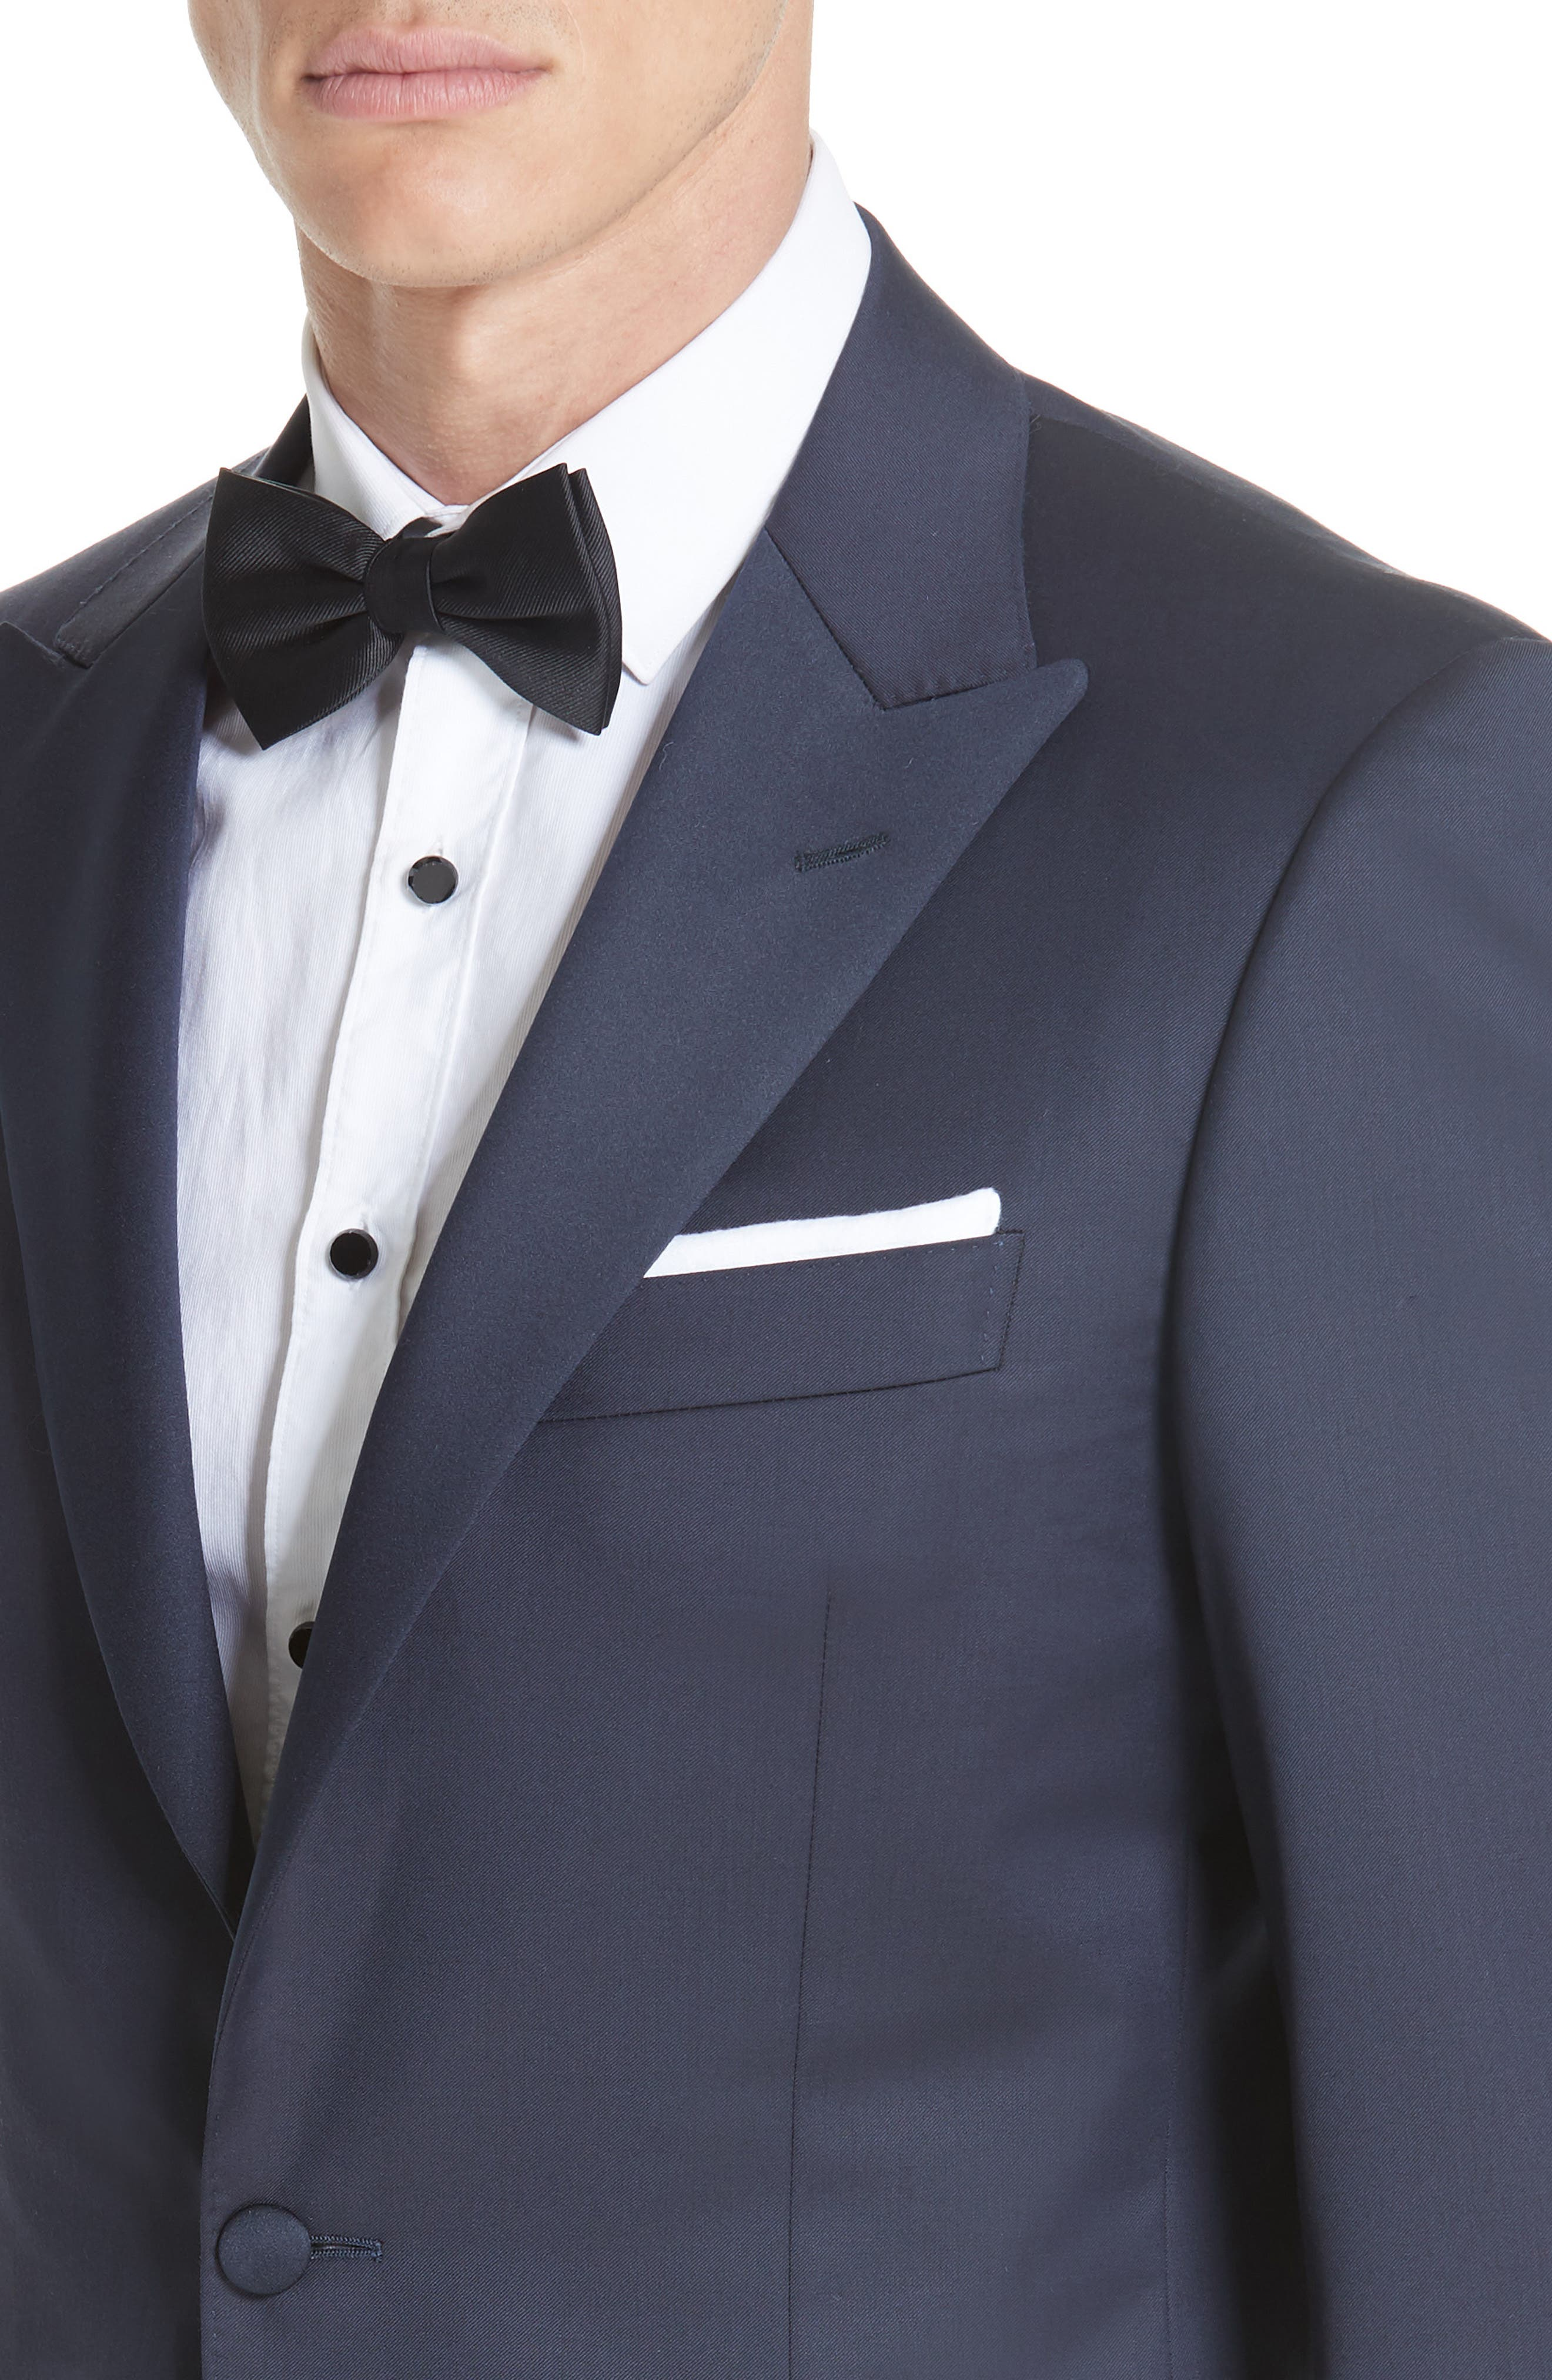 Classic Fit Wool Tuxedo,                             Alternate thumbnail 4, color,                             NAVY